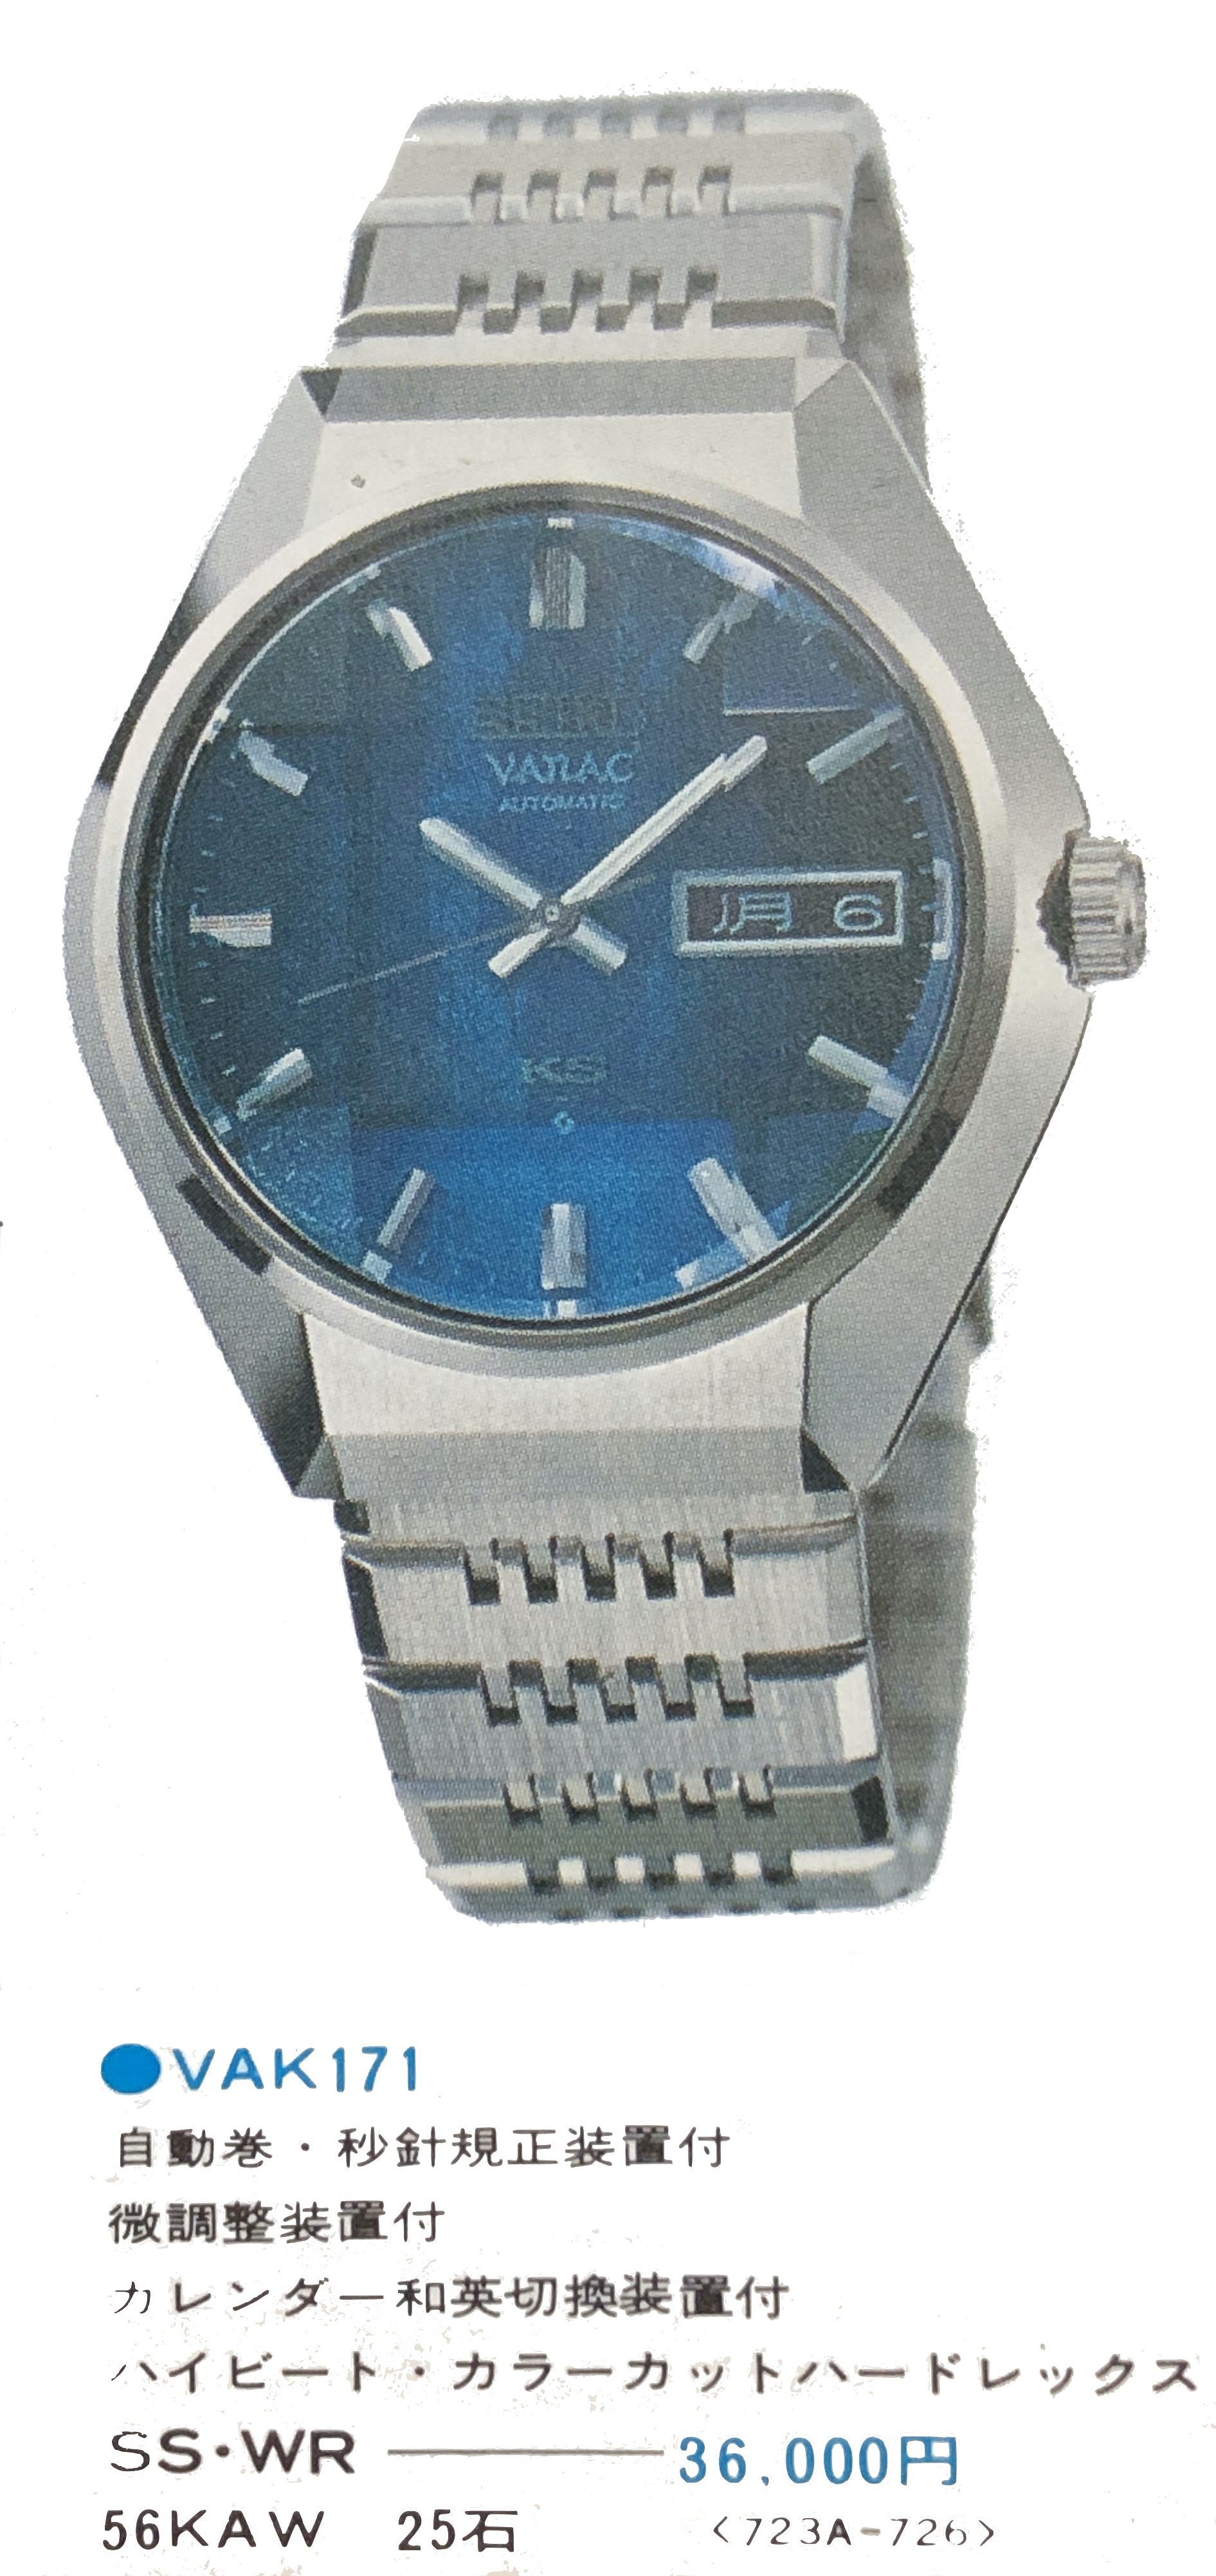 King Seiko Vanac 56236-723A (2 Incoming/ 1 Reserved)